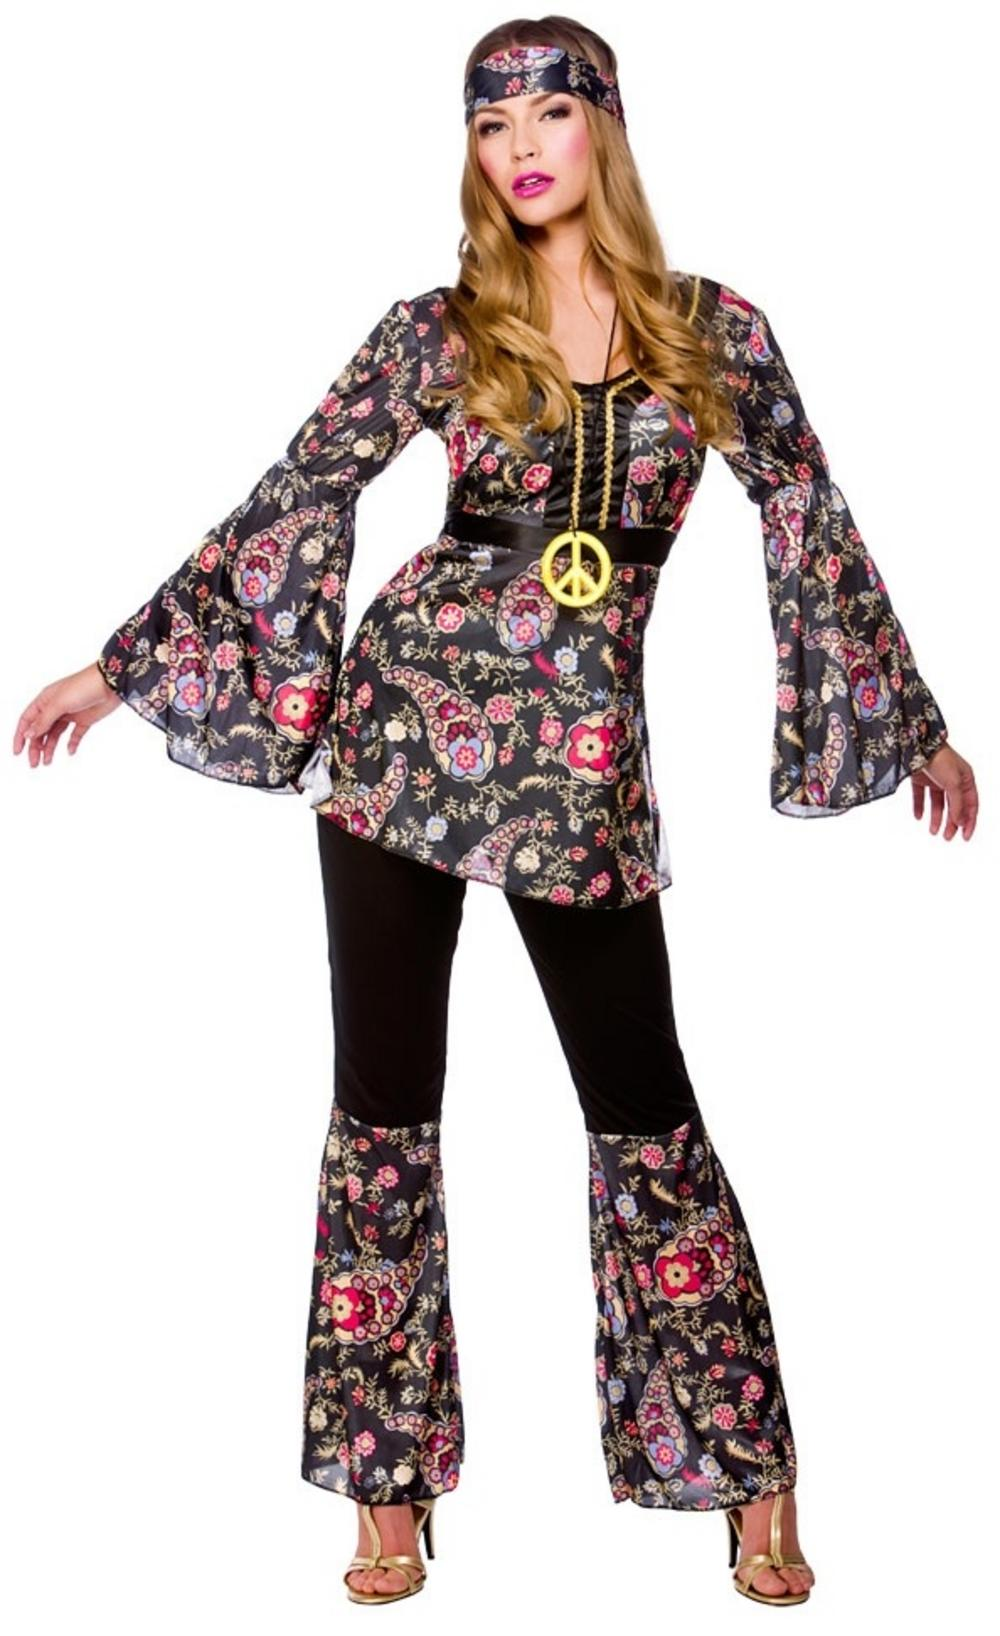 peace loving hippie 60s costume all ladies costumes. Black Bedroom Furniture Sets. Home Design Ideas